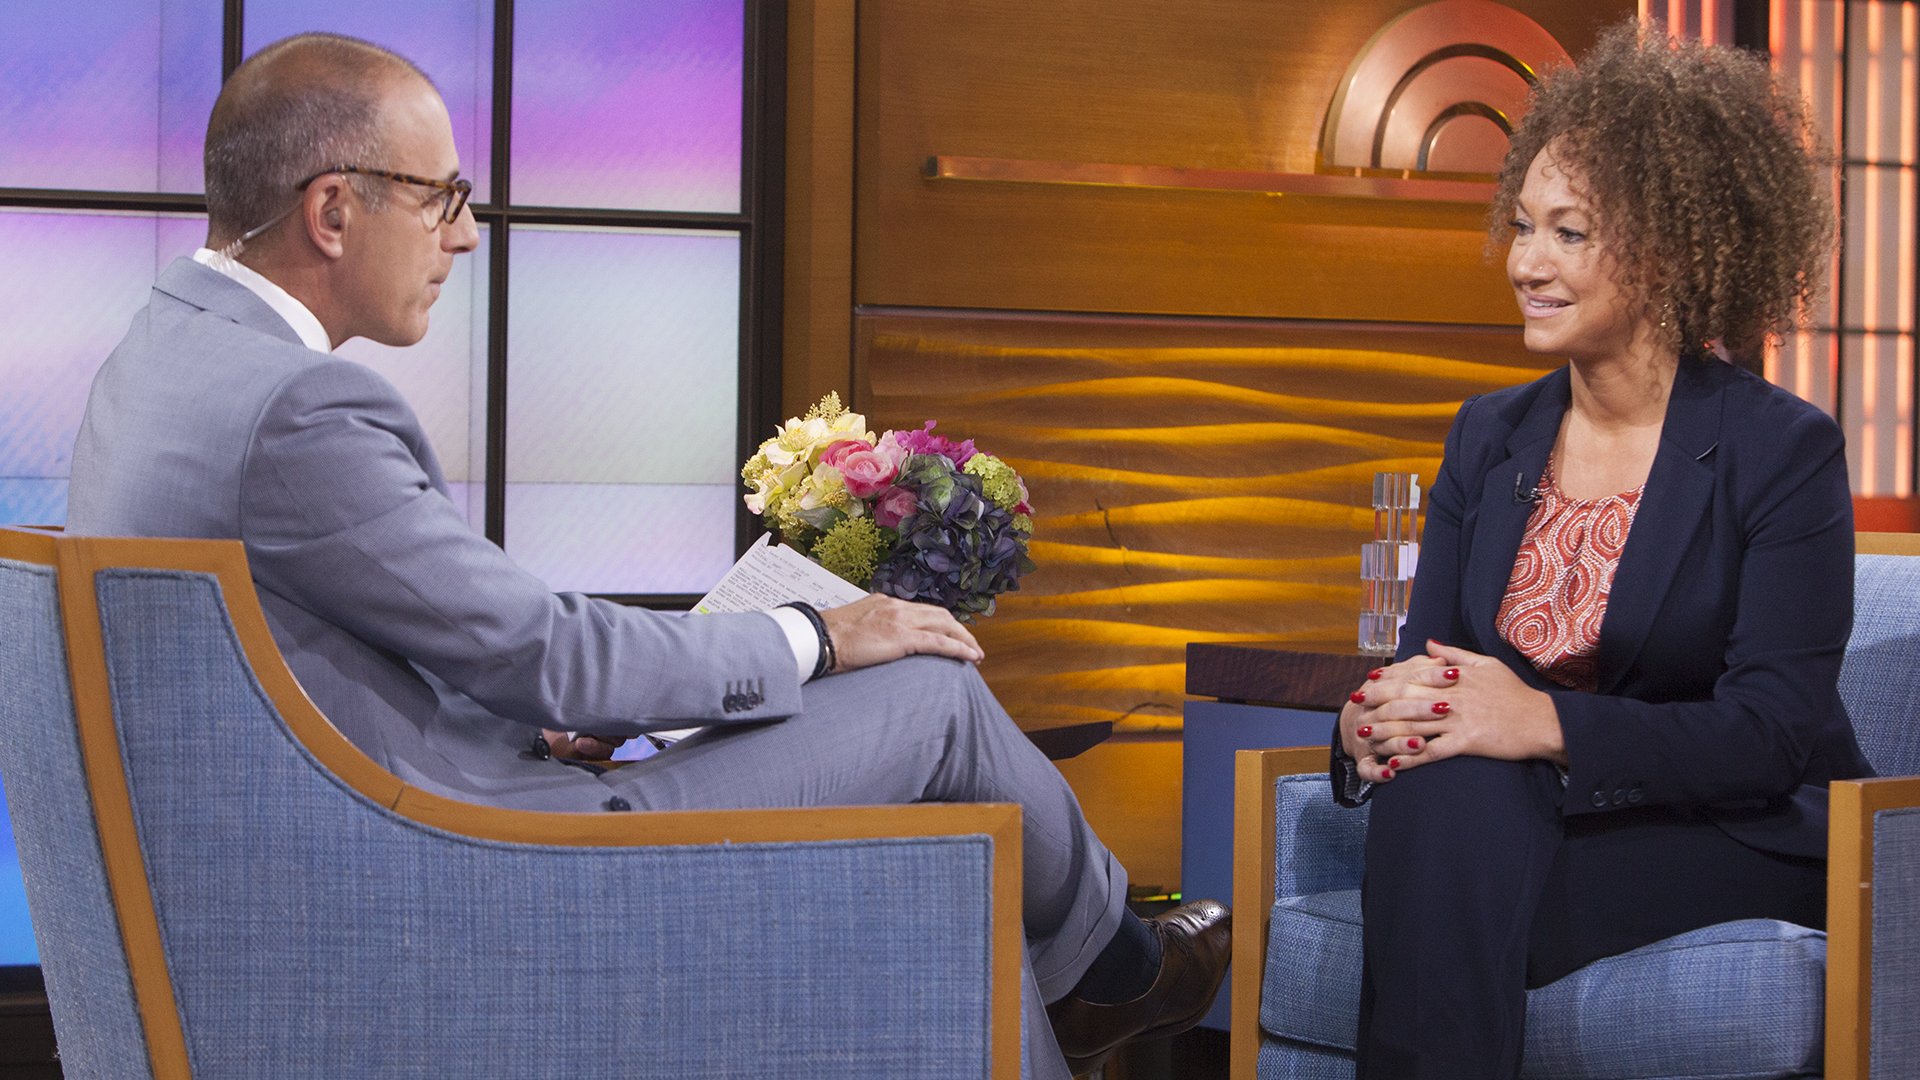 Matt Lauer interviews former NAACP leader Rachel Dolezal about allegations she lied about her race.